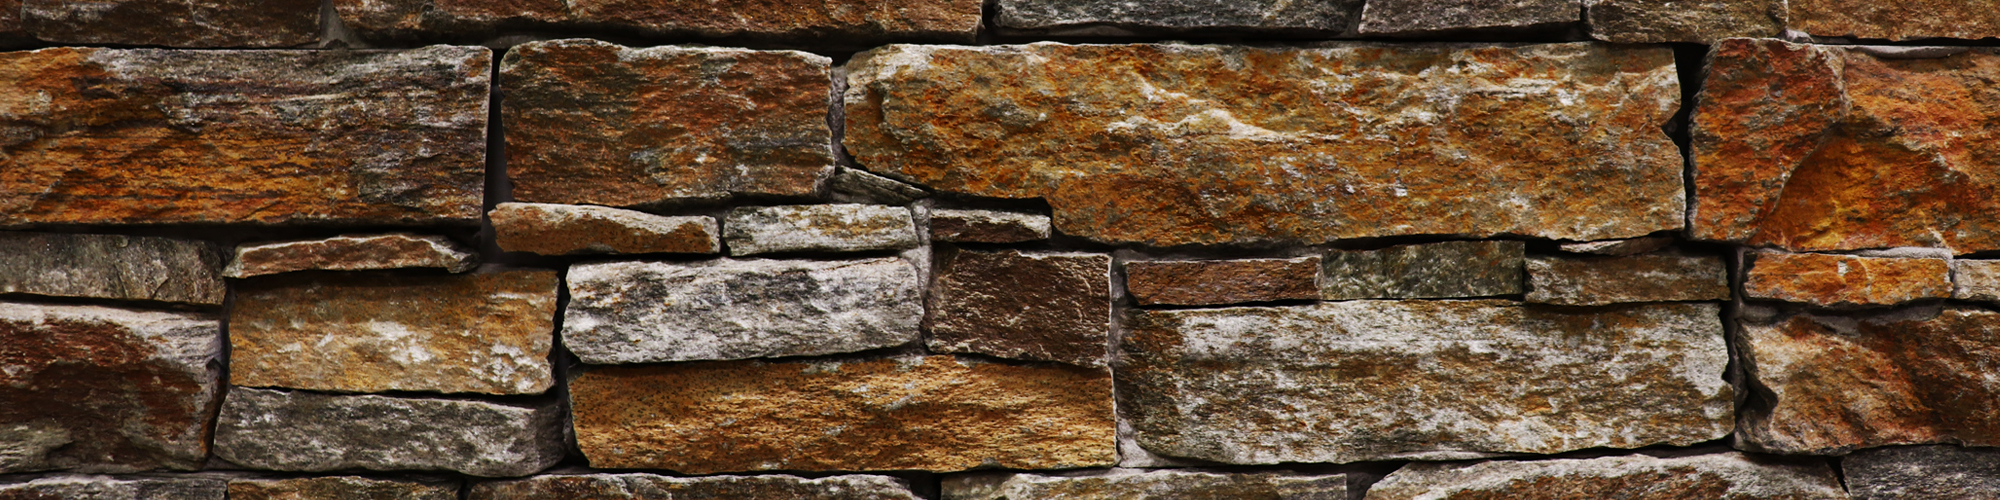 stone cladding, texture, wall cladding, exterior stone cladding